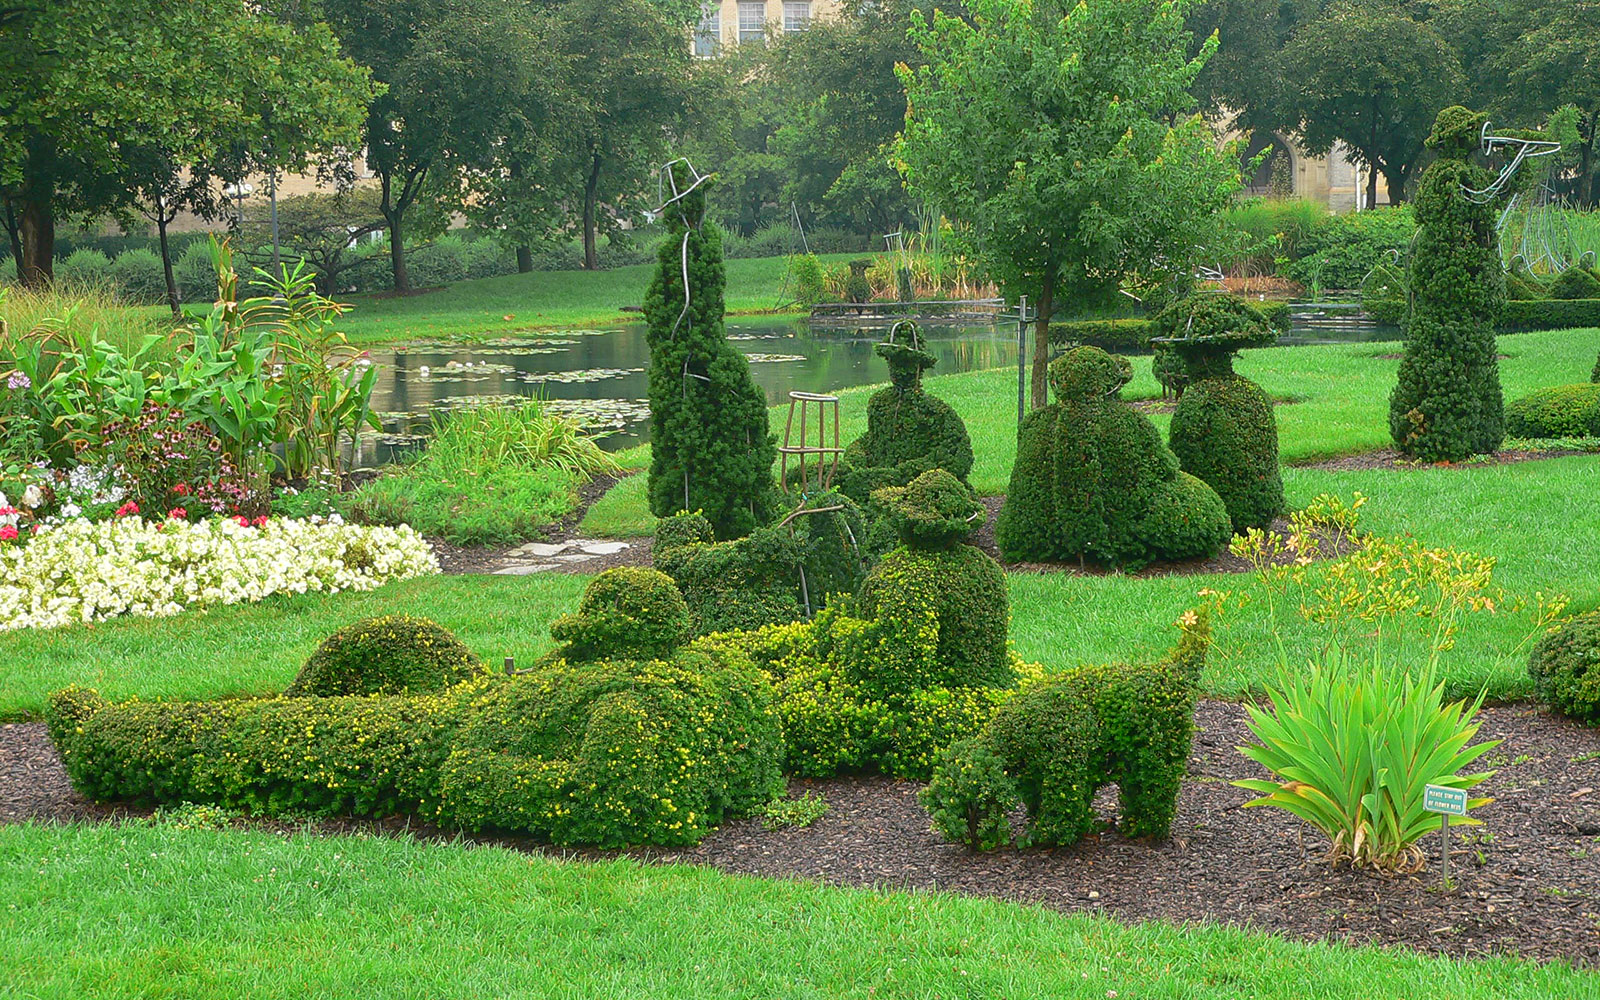 America's Most Beautiful Gardens: The Topiary Park